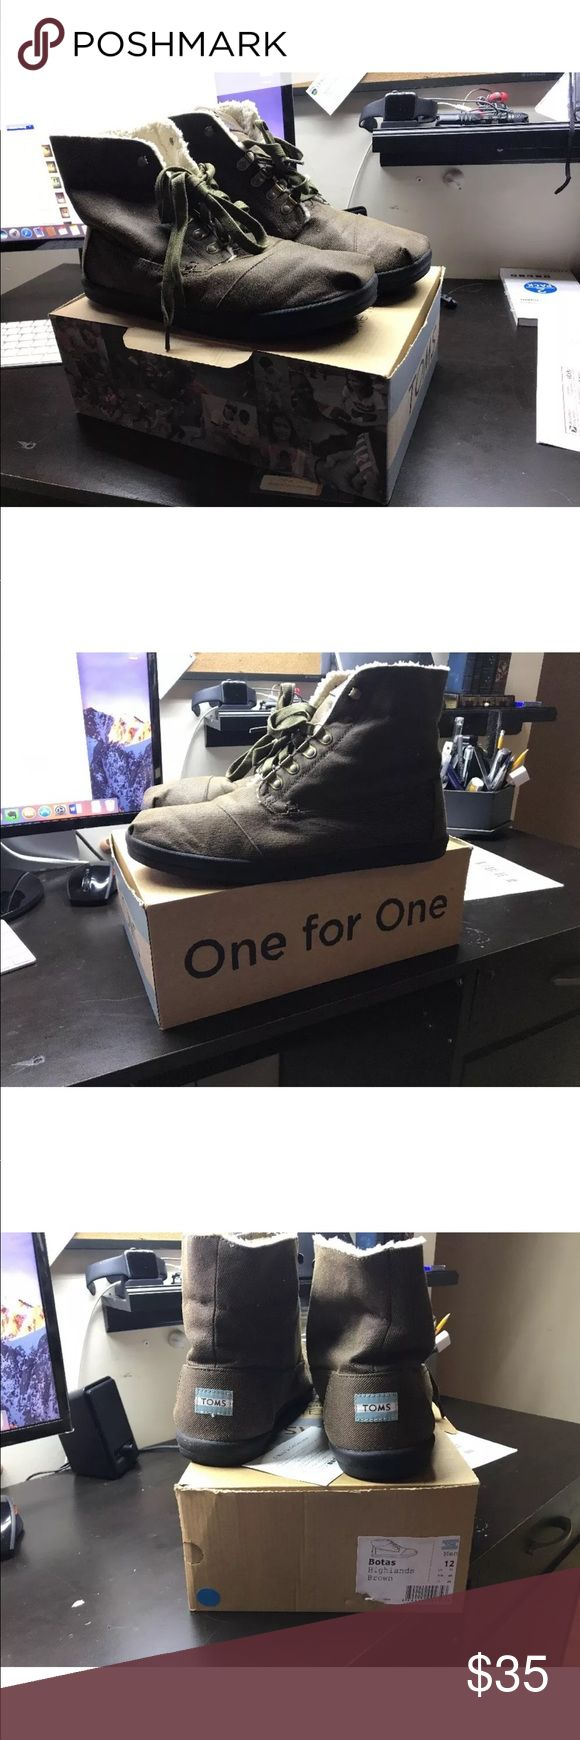 TOMS Brown Fleece Highland Botas with box size 12 Shoes are in excellent condition only were worn once. Comes with original box. Feel free to ask any questions Toms Shoes Chukka Boots